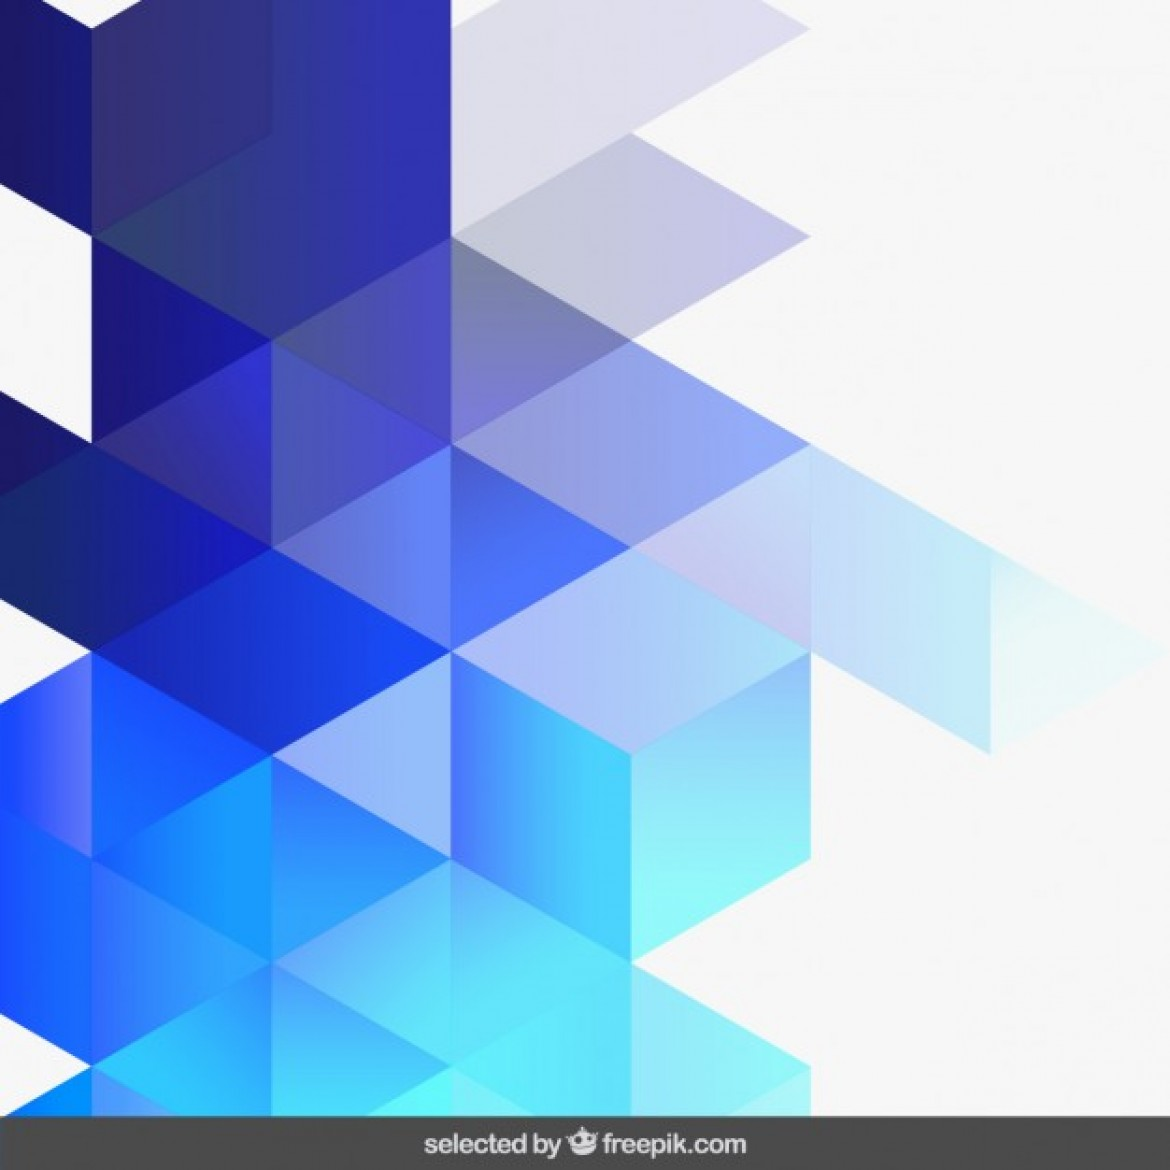 Geometric Background Vector at GetDrawings com   Free for personal